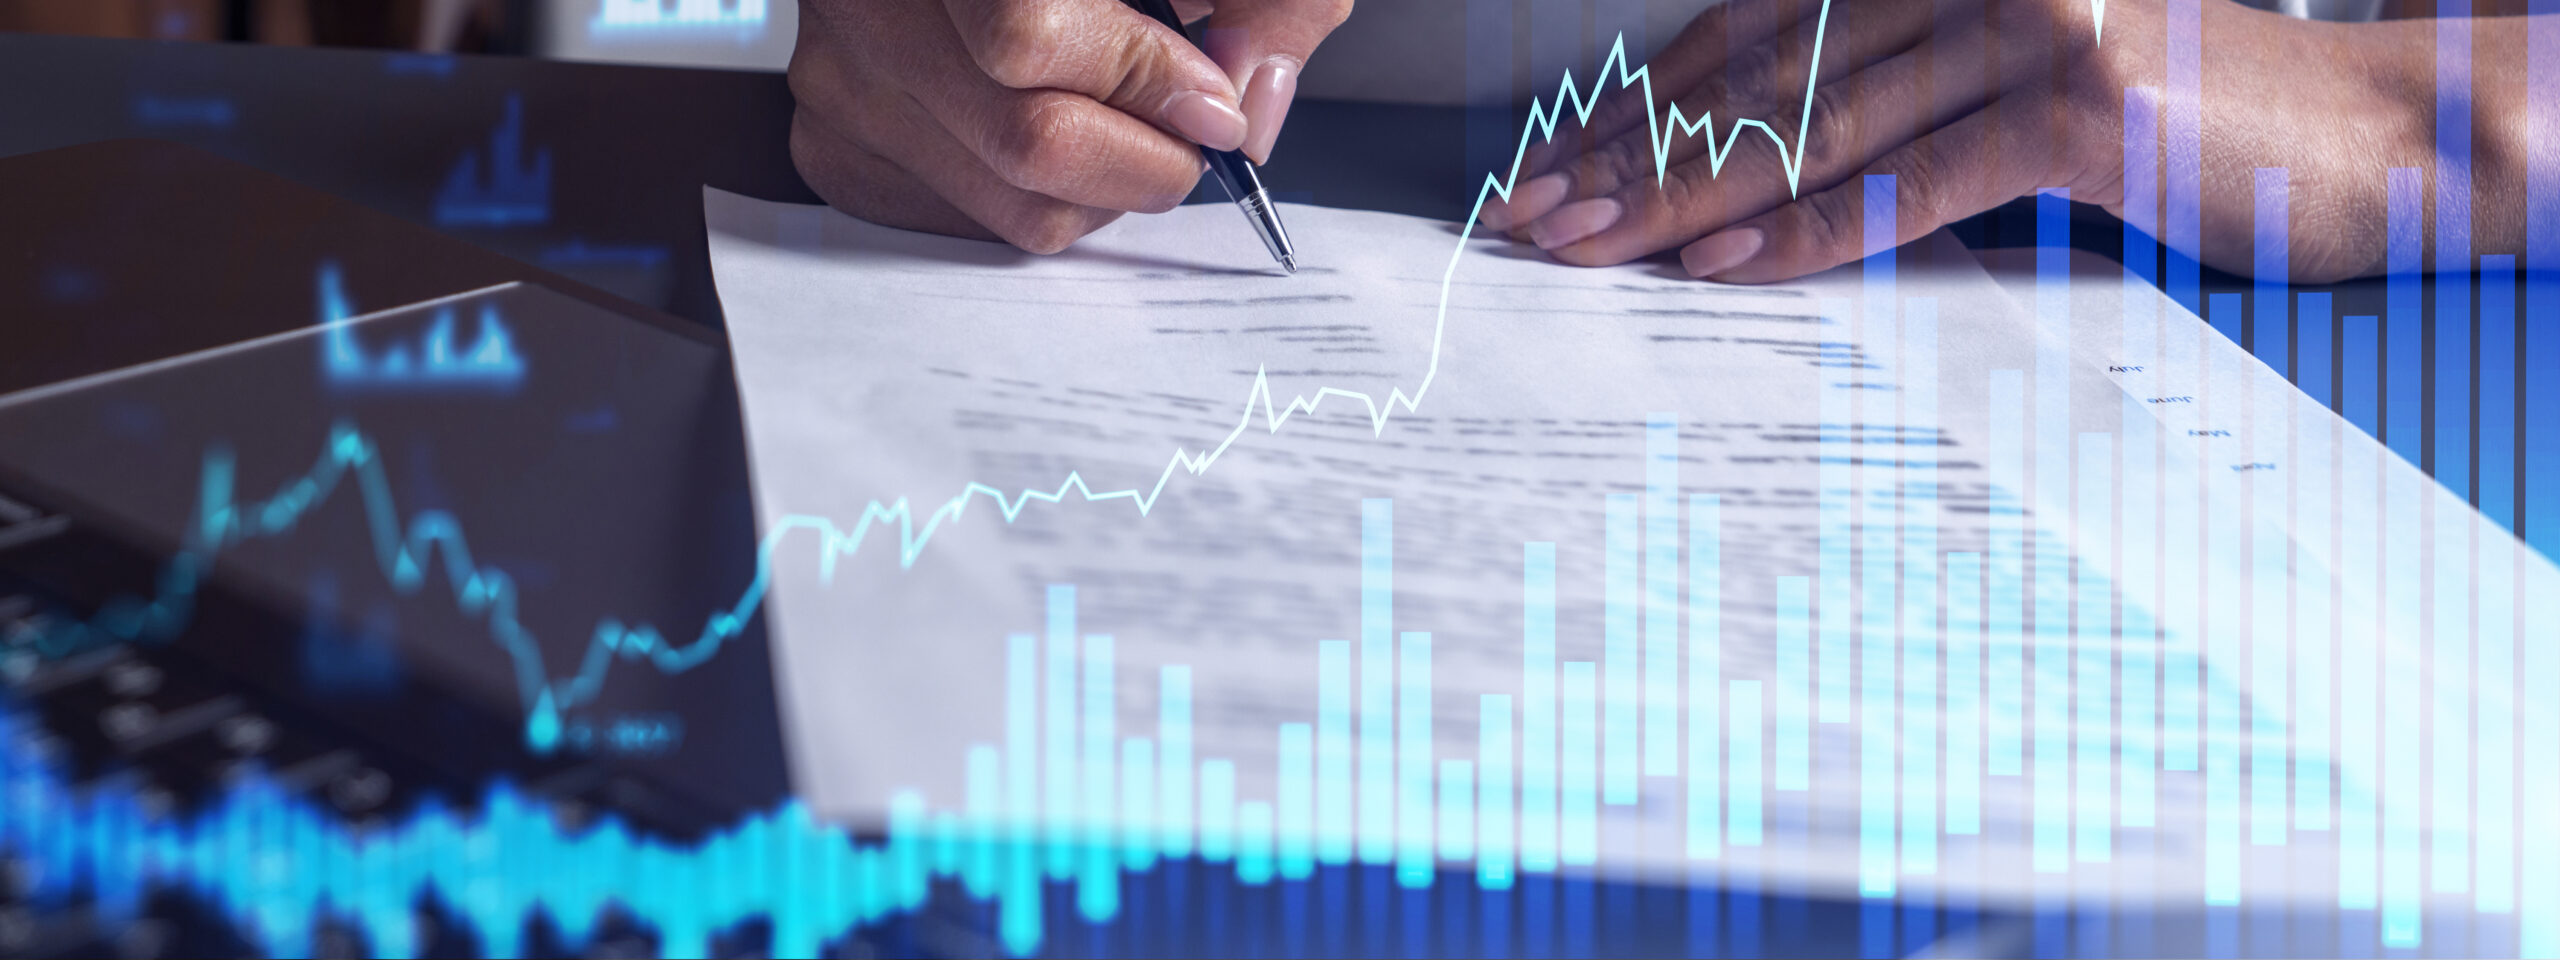 A client in casual wear is signing the contract to invest money in stock market. Internet trading and wealth management. Forex and financial hologram chart over the desk. Women in business concept.